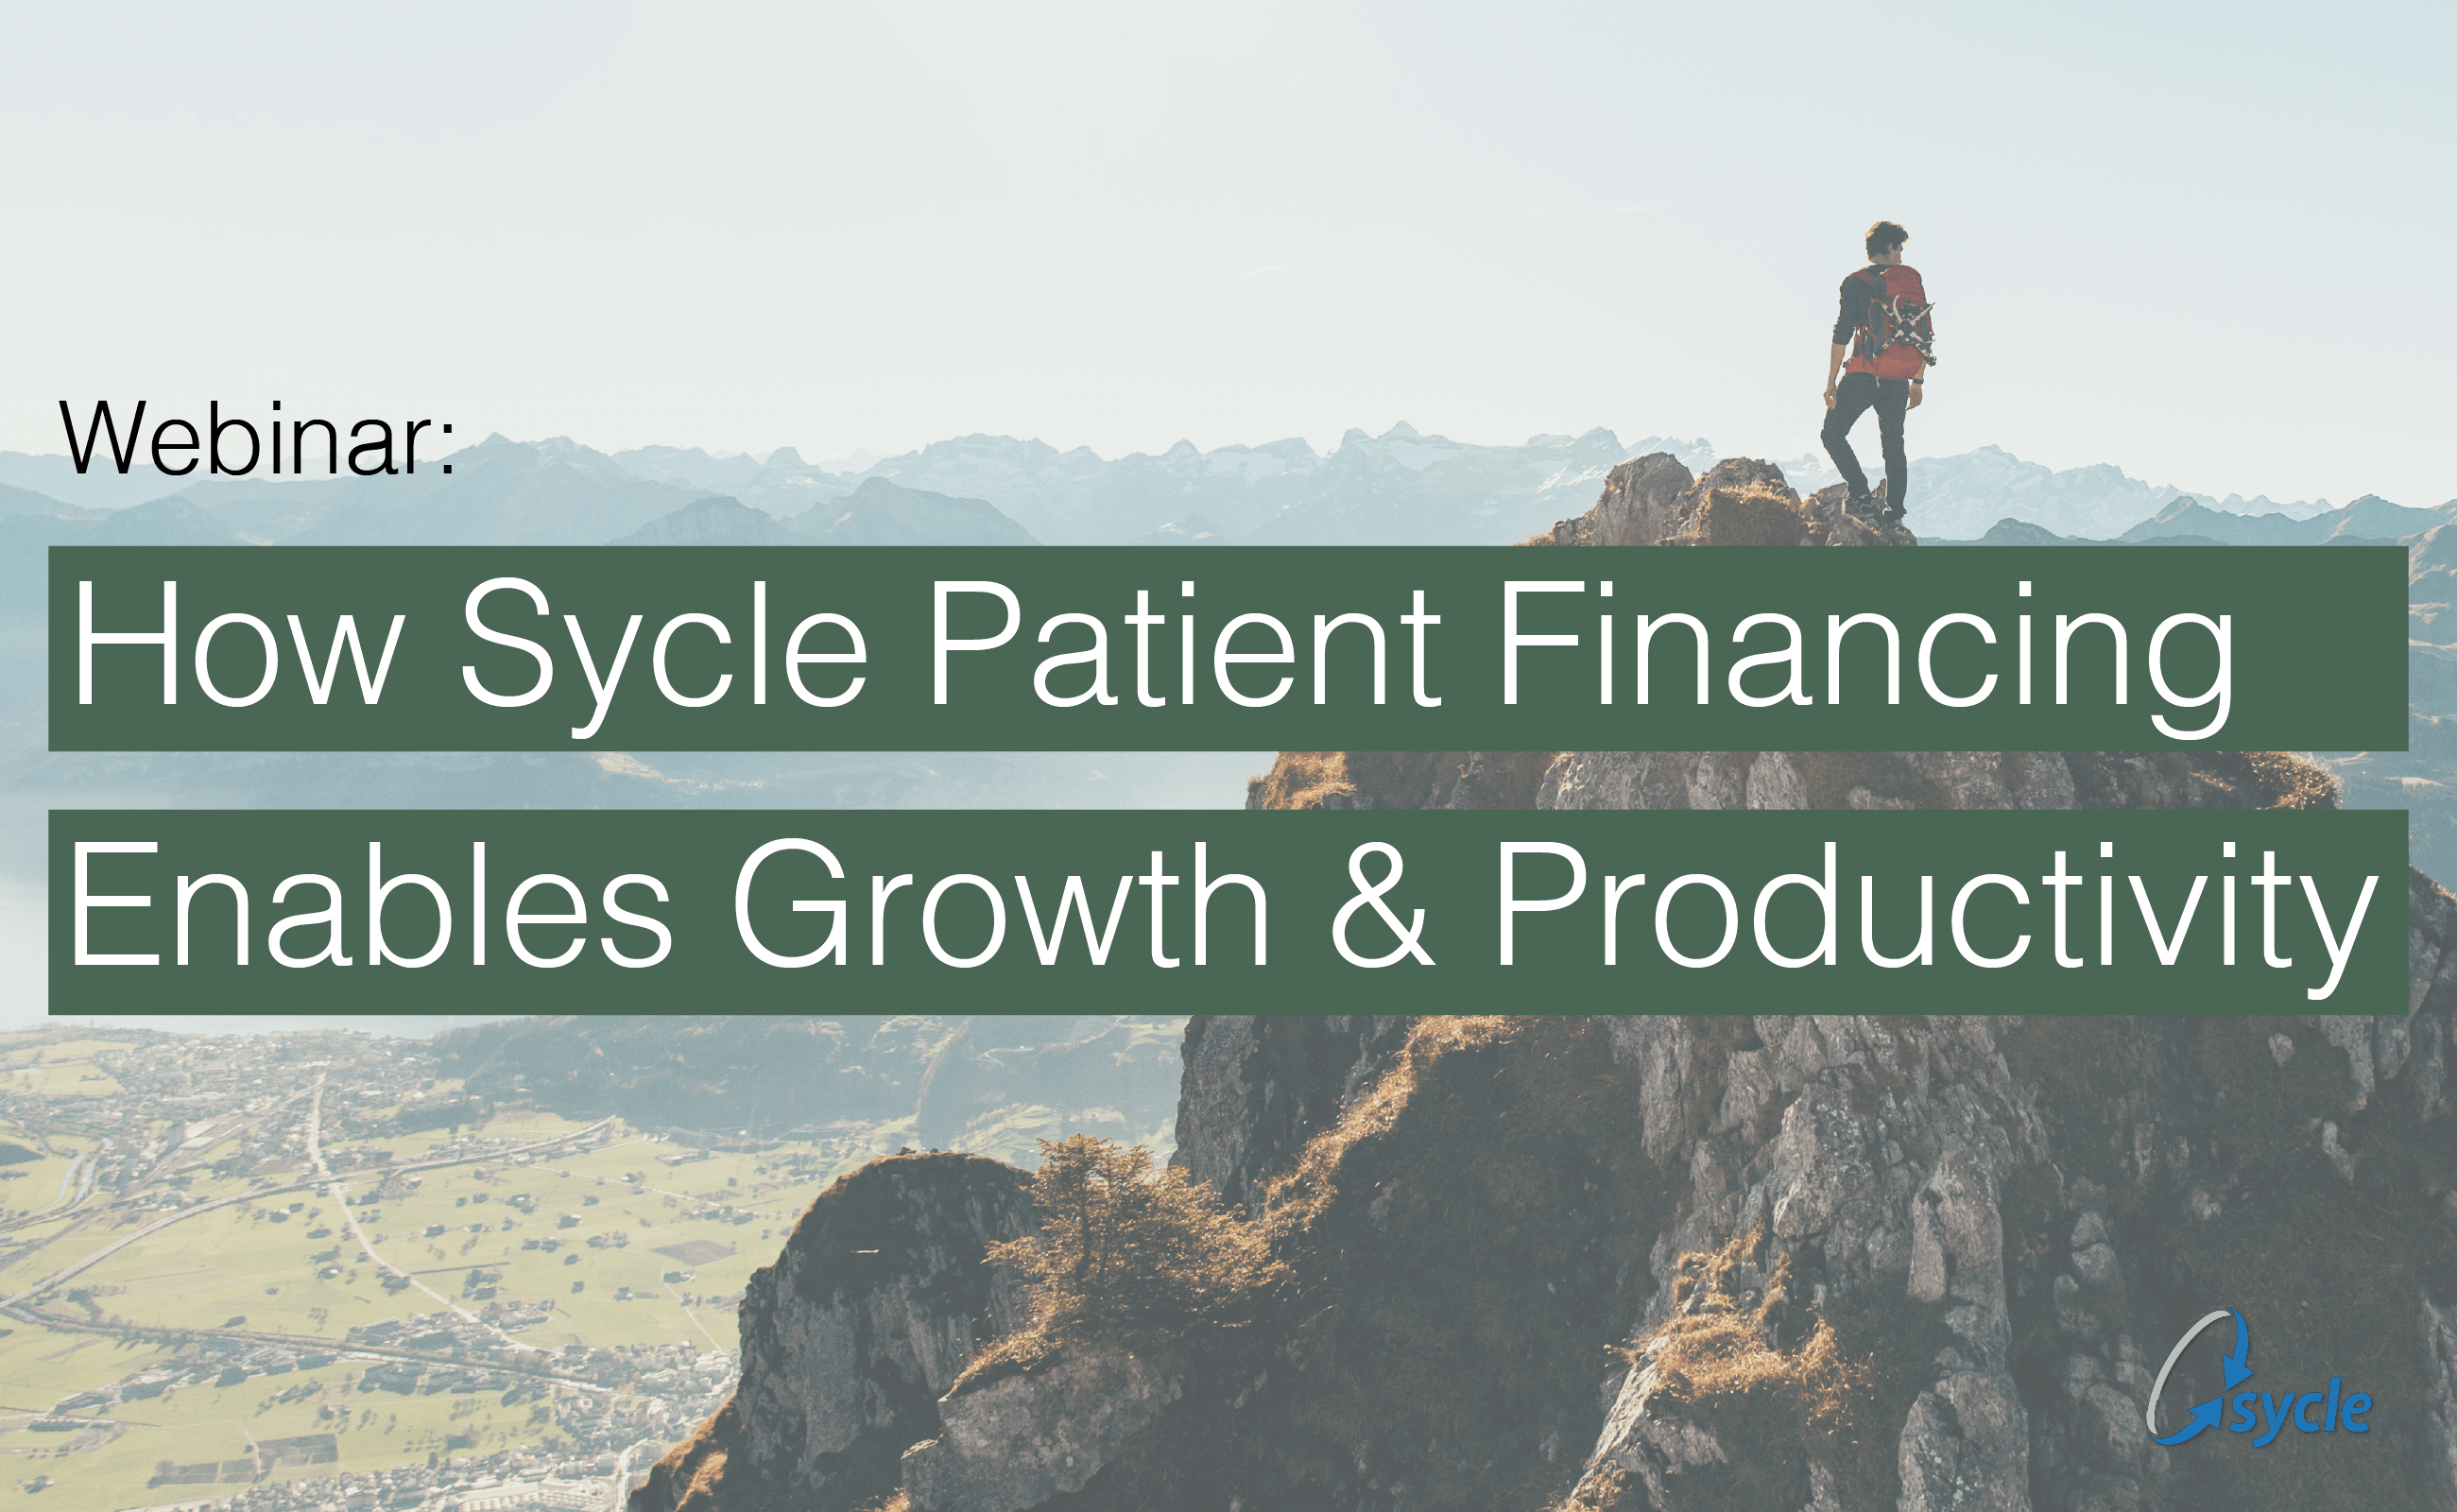 Webinar Recording: How Sycle Patient Financing Enables Growth & Productivity image